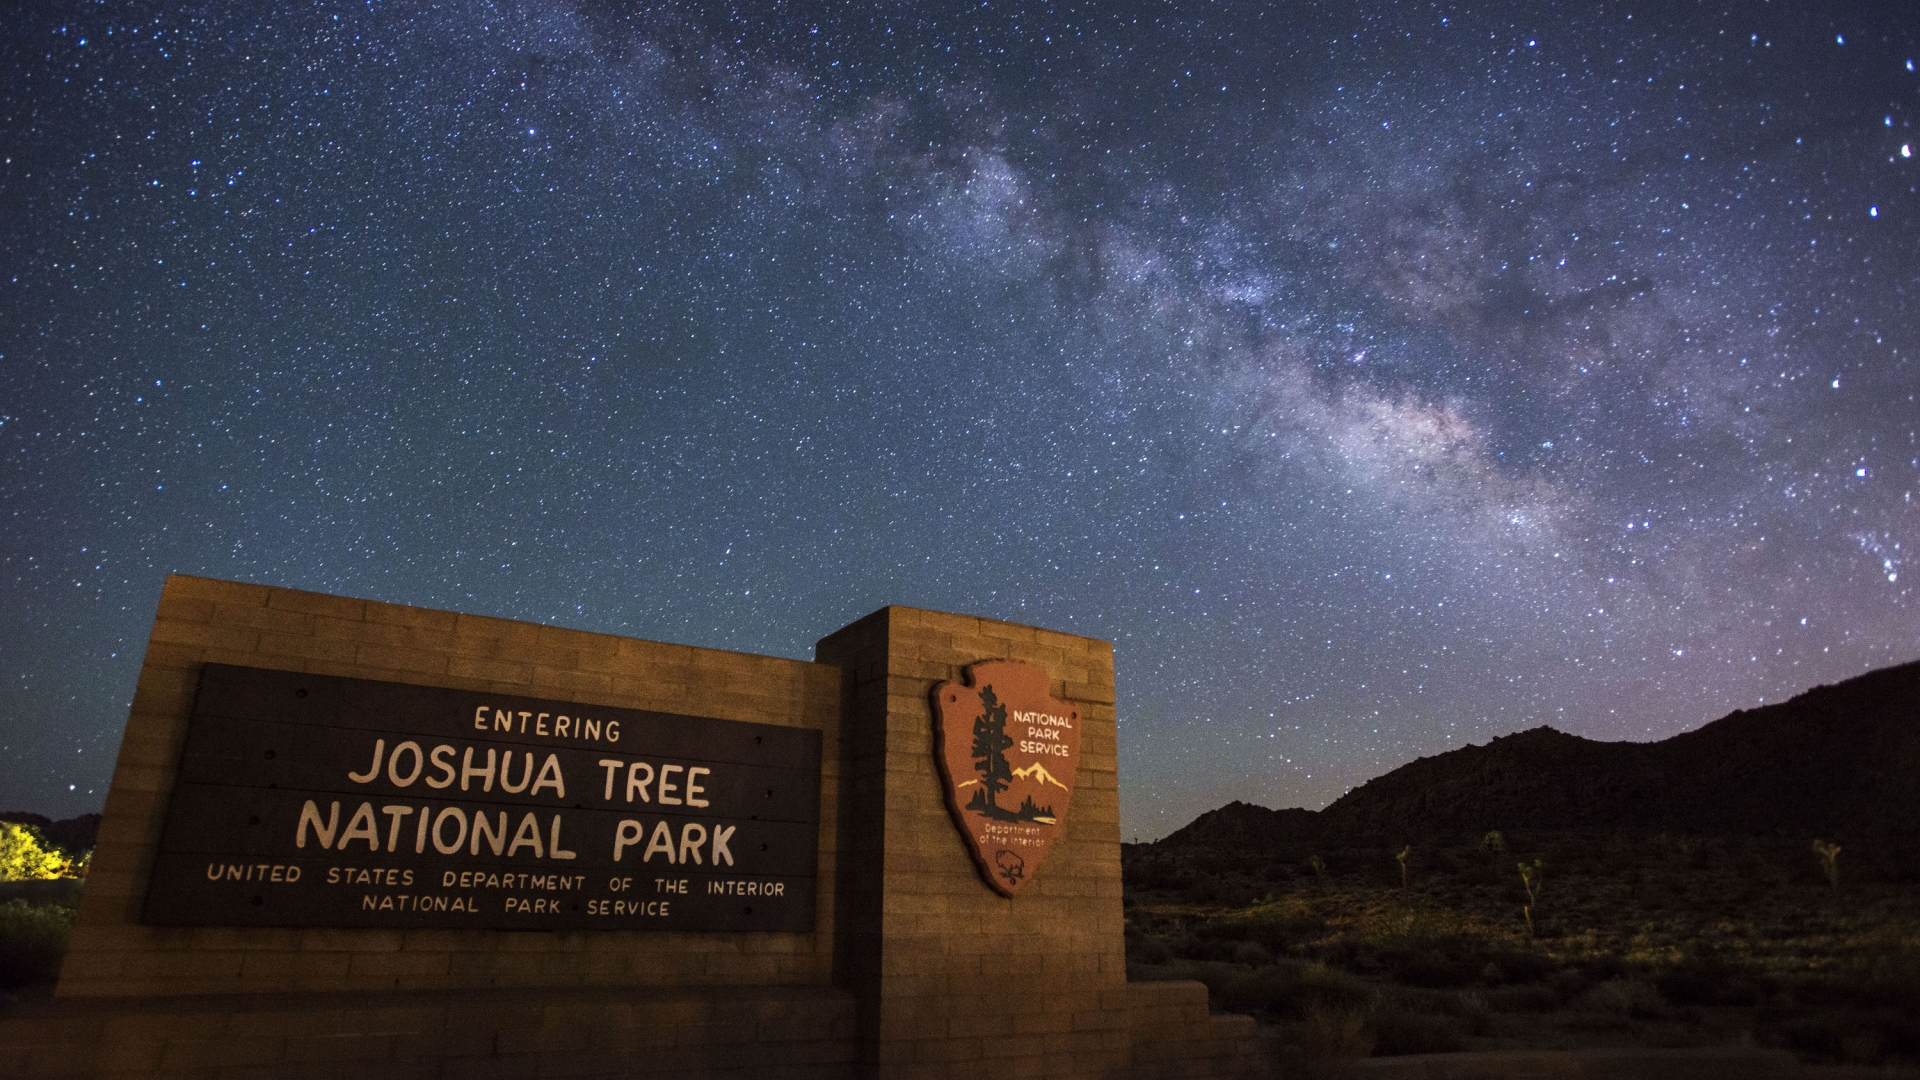 The Milky Way in the starry night sky with the Joshua Tree National Park entrance sign in the foreground